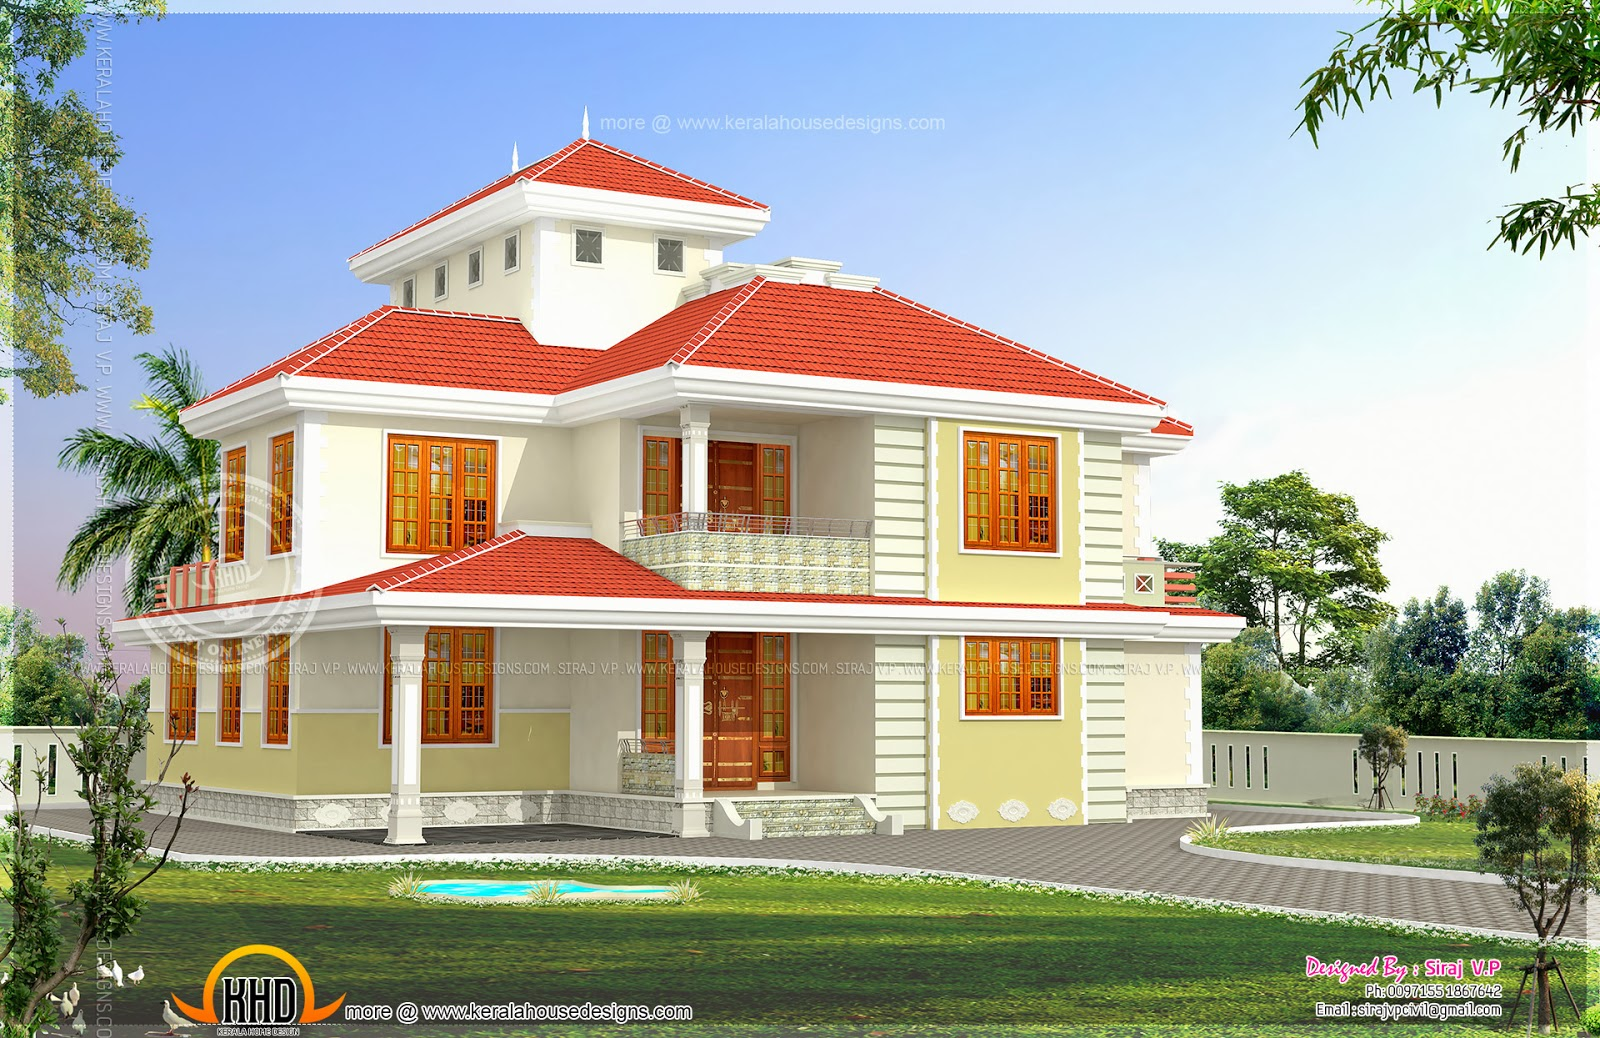 5 bedroom luxury house in kasaragod keralahousedesigns for Single door designs for indian homes